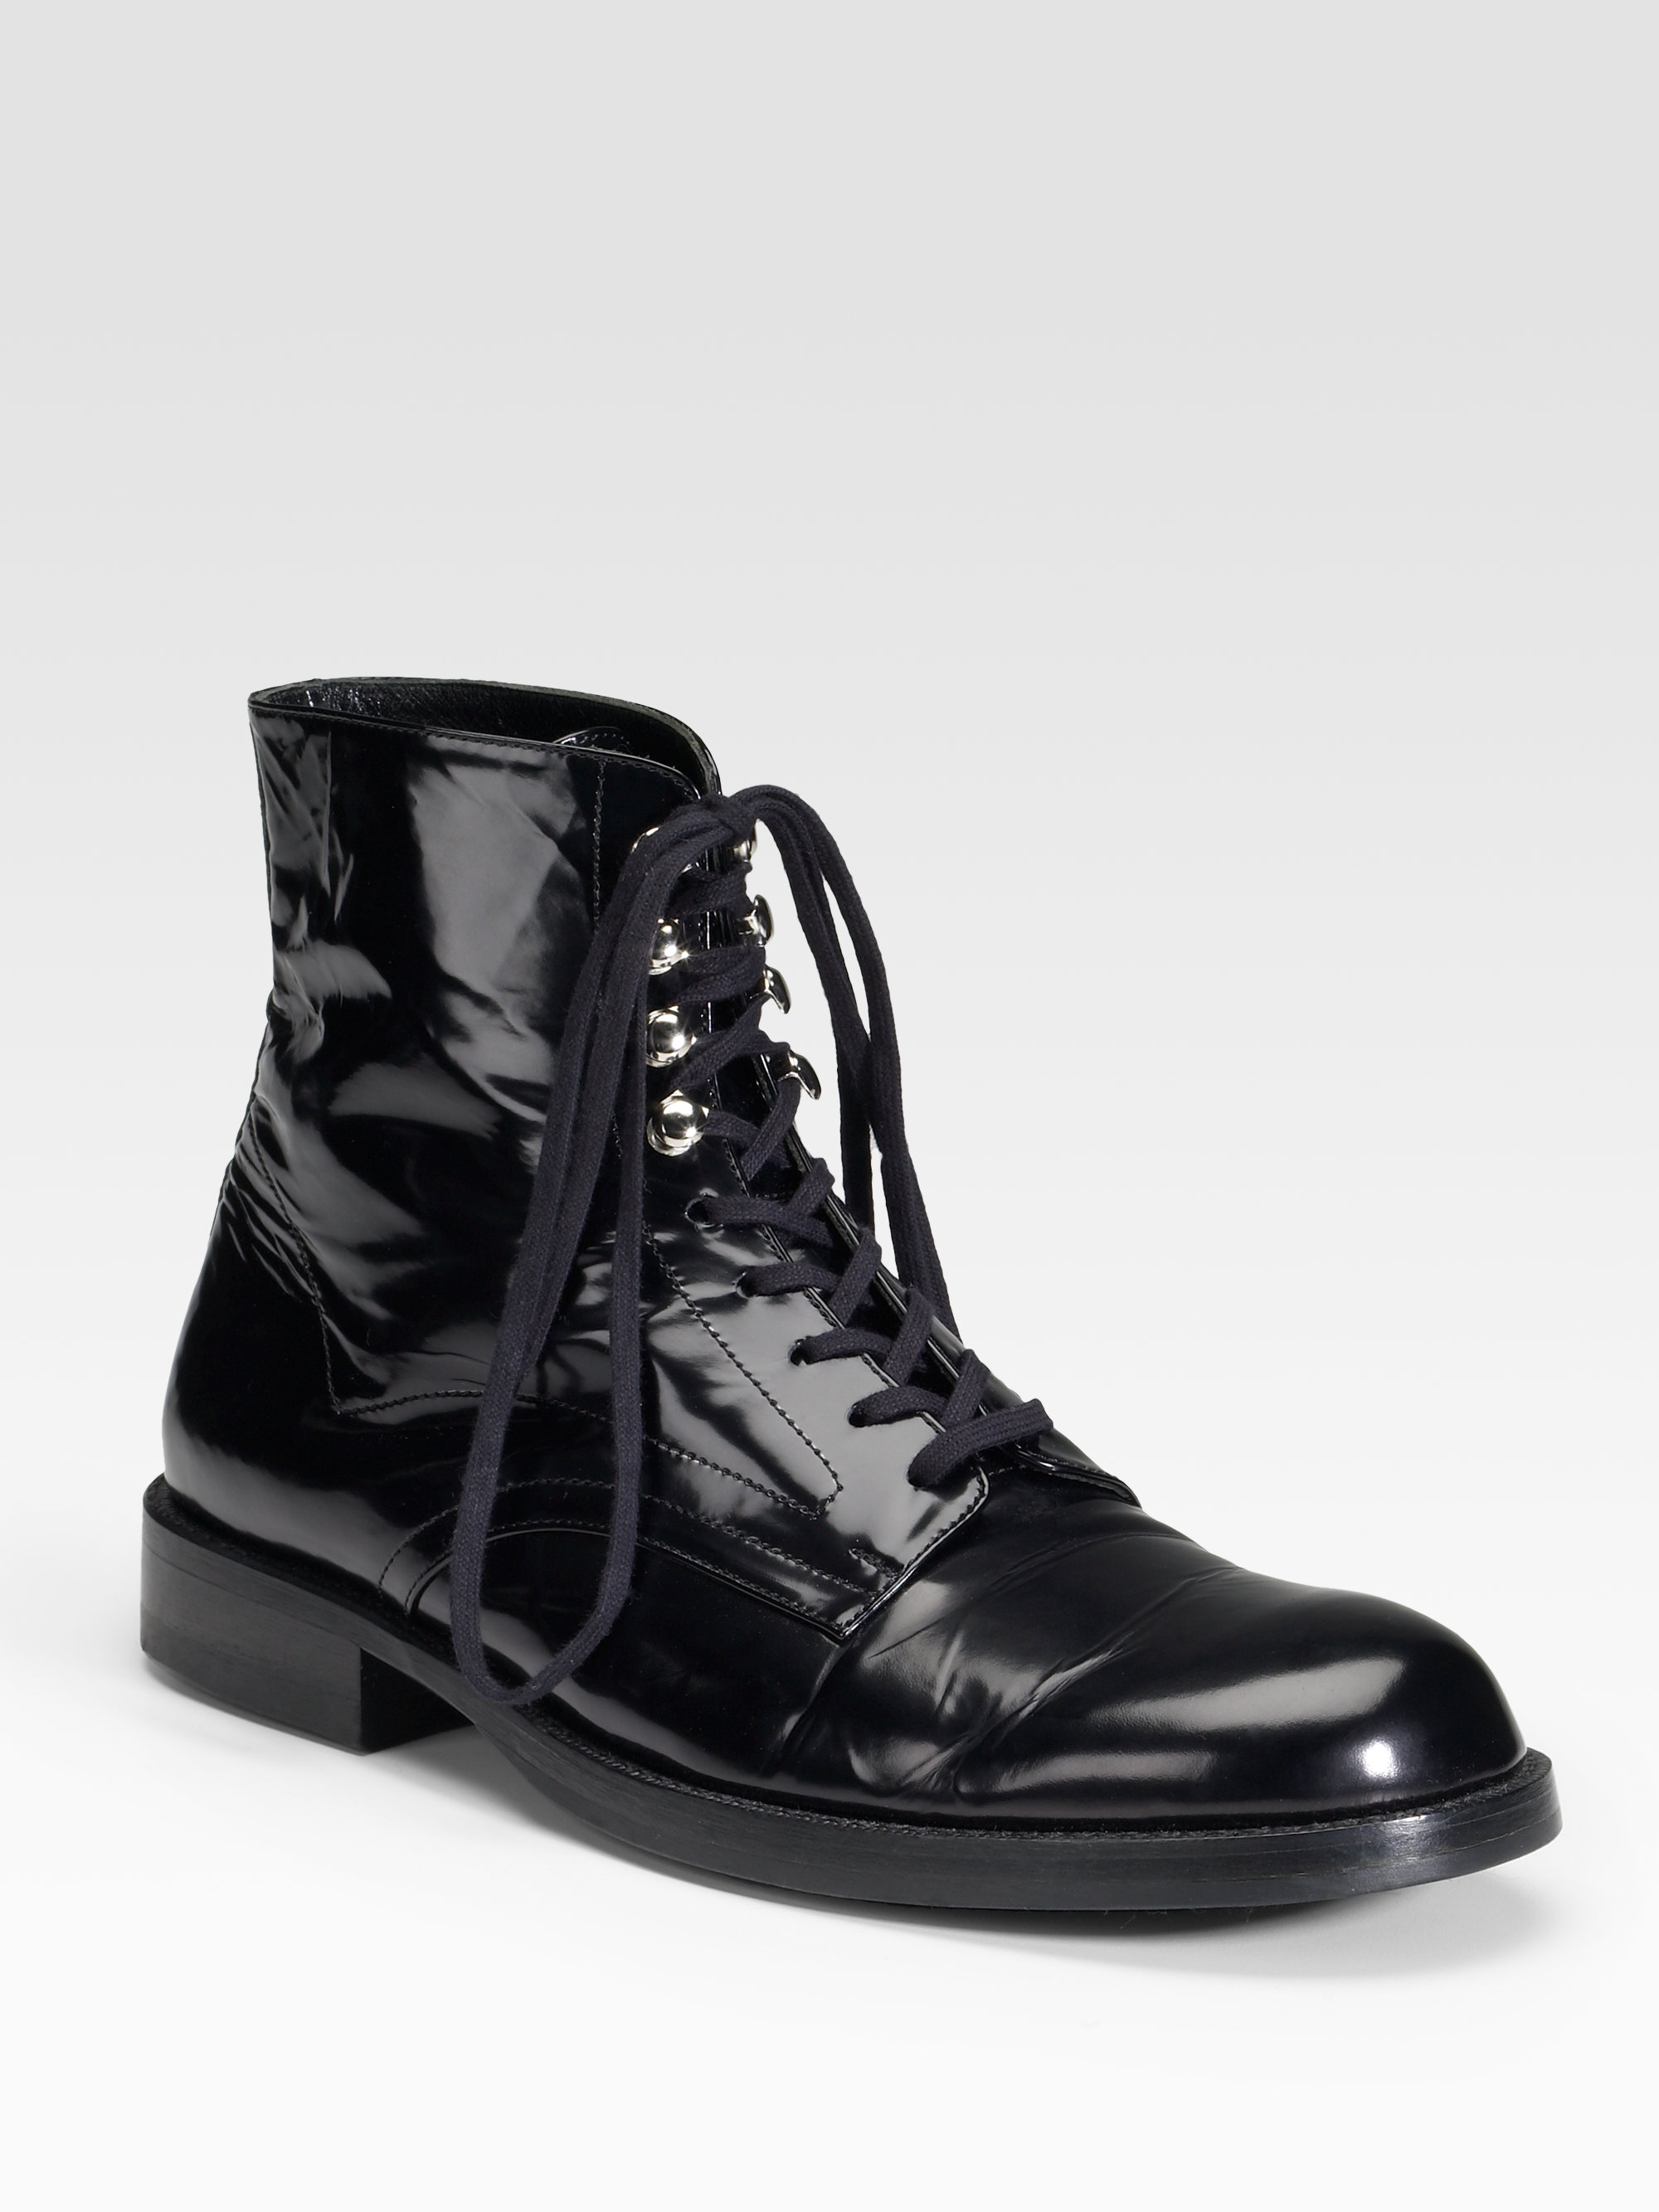 Junya Watanabe Pointed-Toe Lace-Up Booties low price online V1irWYtP1h